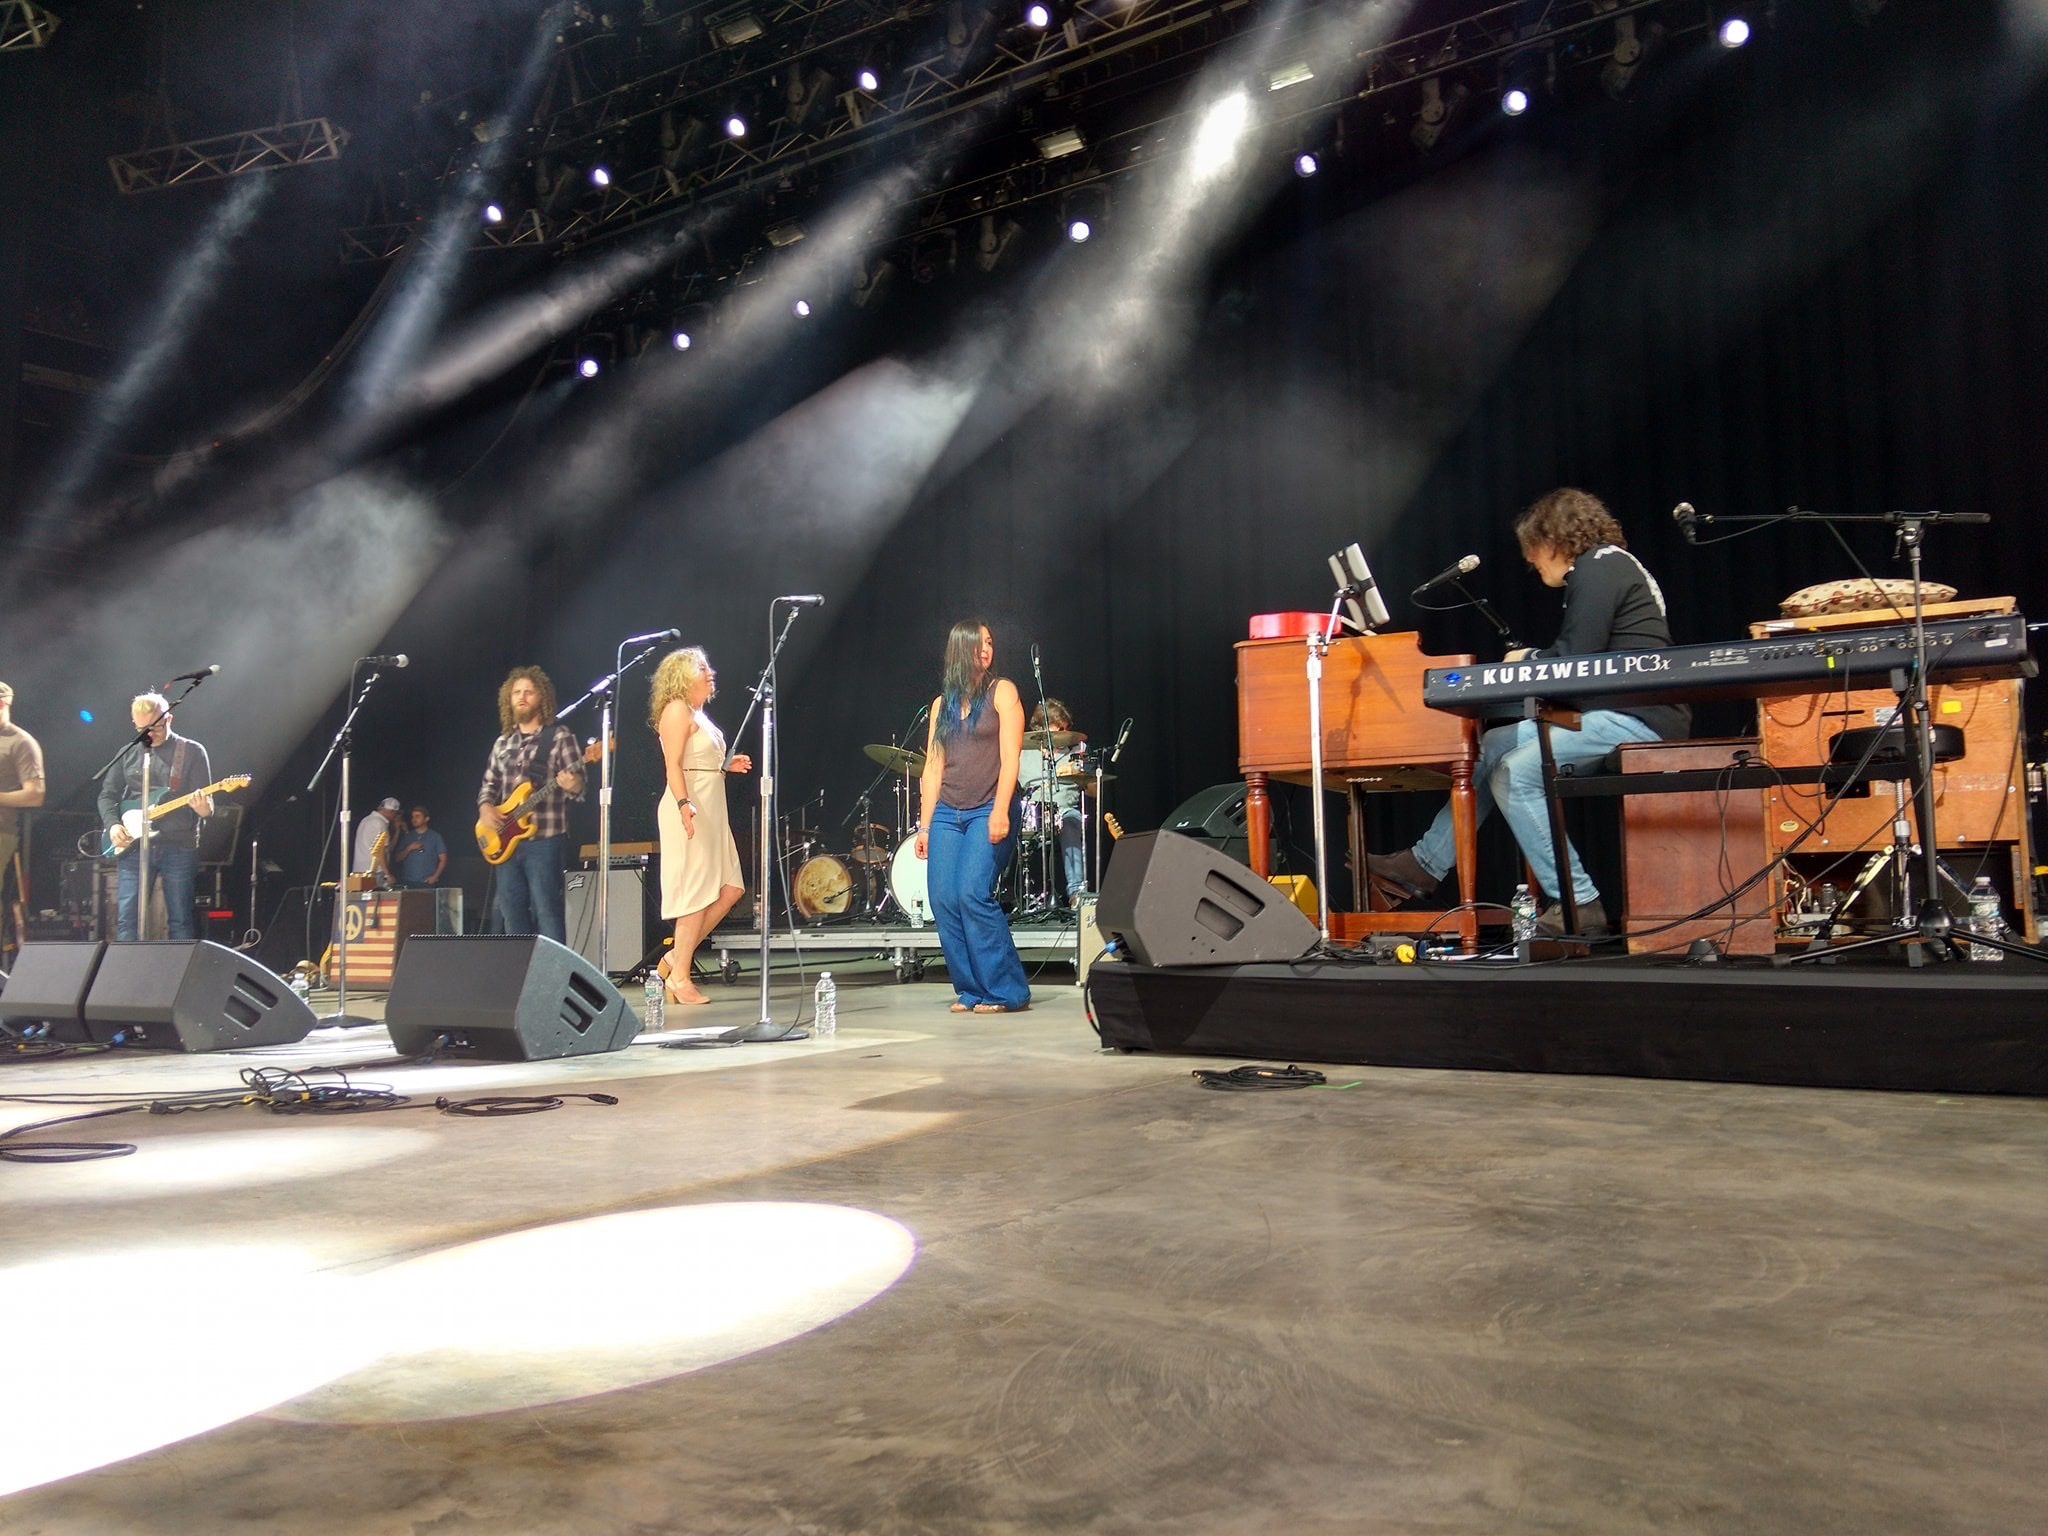 Playing Mountain Jam 2019 on a large stage using a 40-watt amp